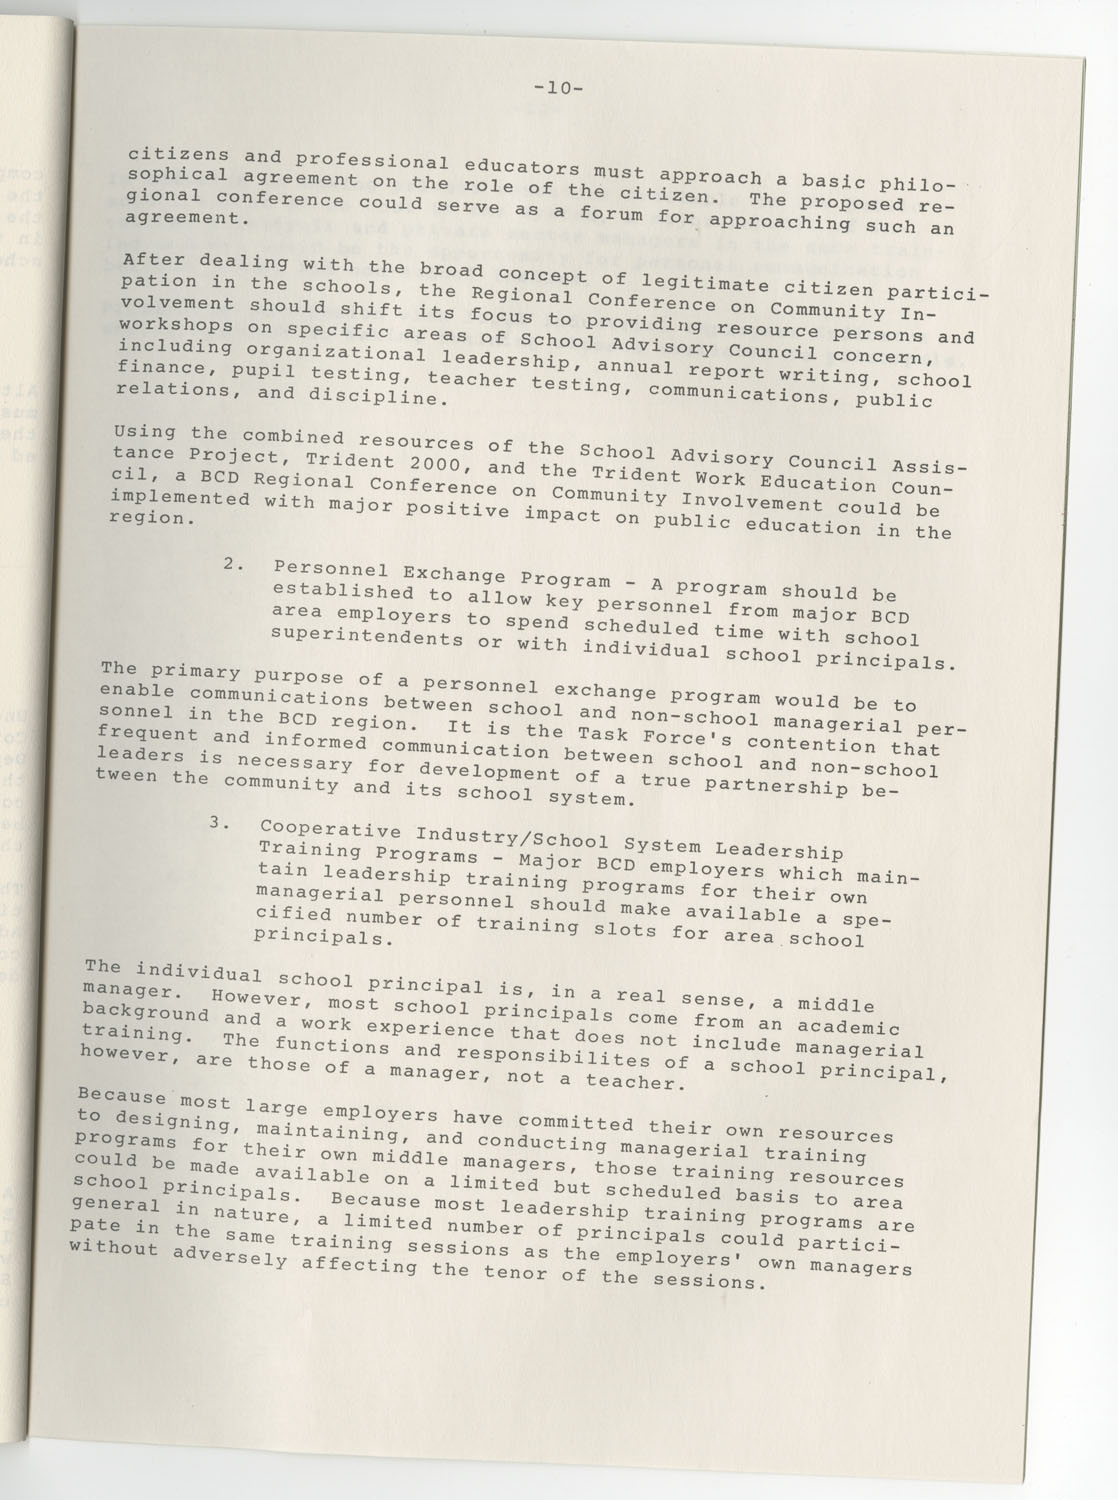 Trident 2000 Task Force Reports on Education, June 1978, Page 10